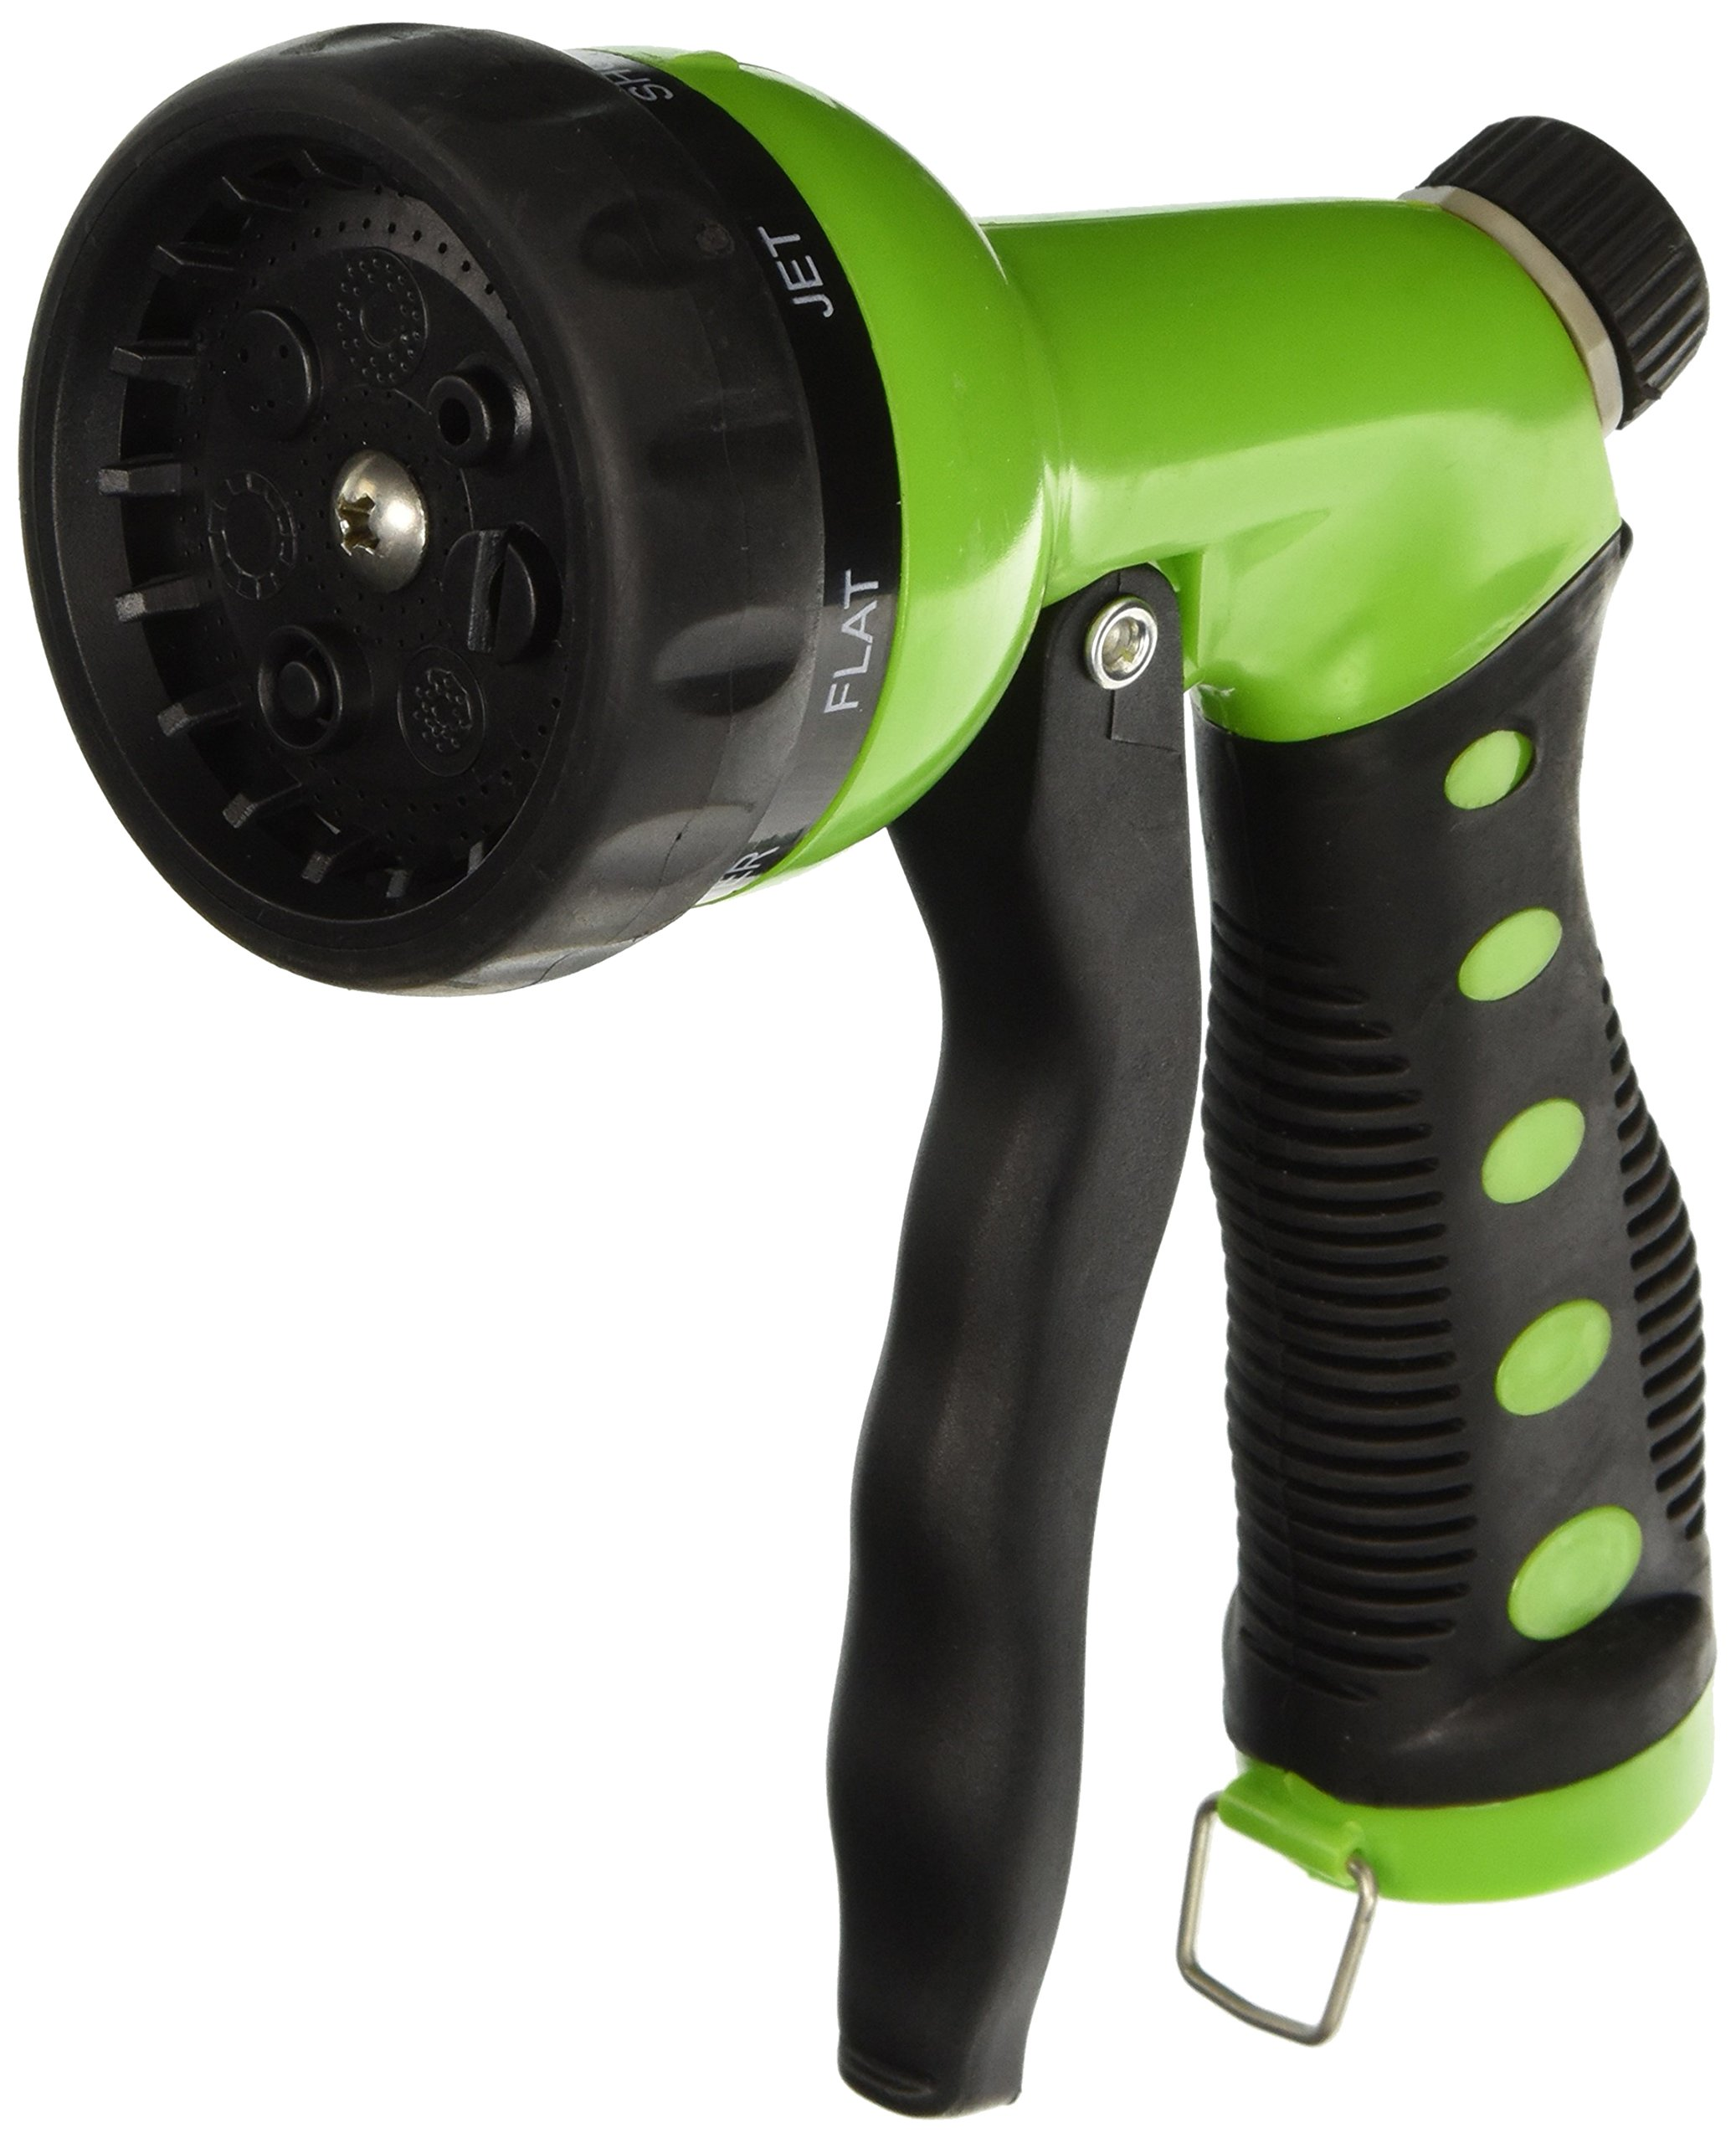 Hose Nozzle / Hand Sprayer - 7 Spray Settings Water Saving Plastic Garden Hose End Sprayer. Best Multi Purpose Attachment for Watering Lawn, Plants, Patio Cleaning, Home, Automotive / Car Wash Use - Ultimate 1 Year Replacement Warranty! Green Nozzle